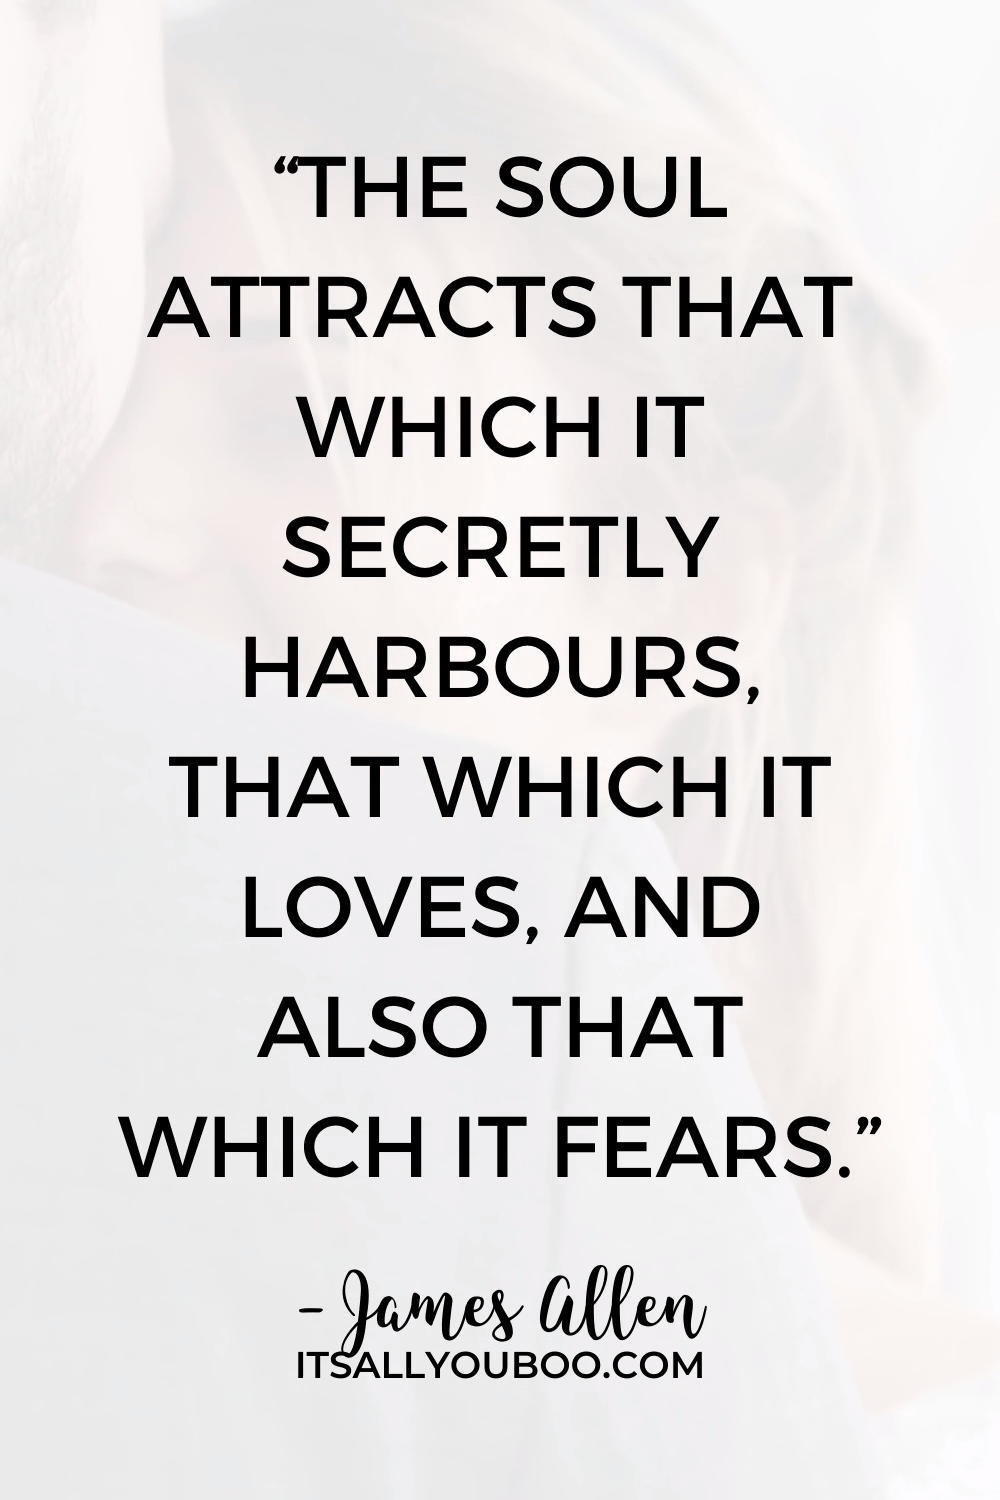 What is your soul attracting?